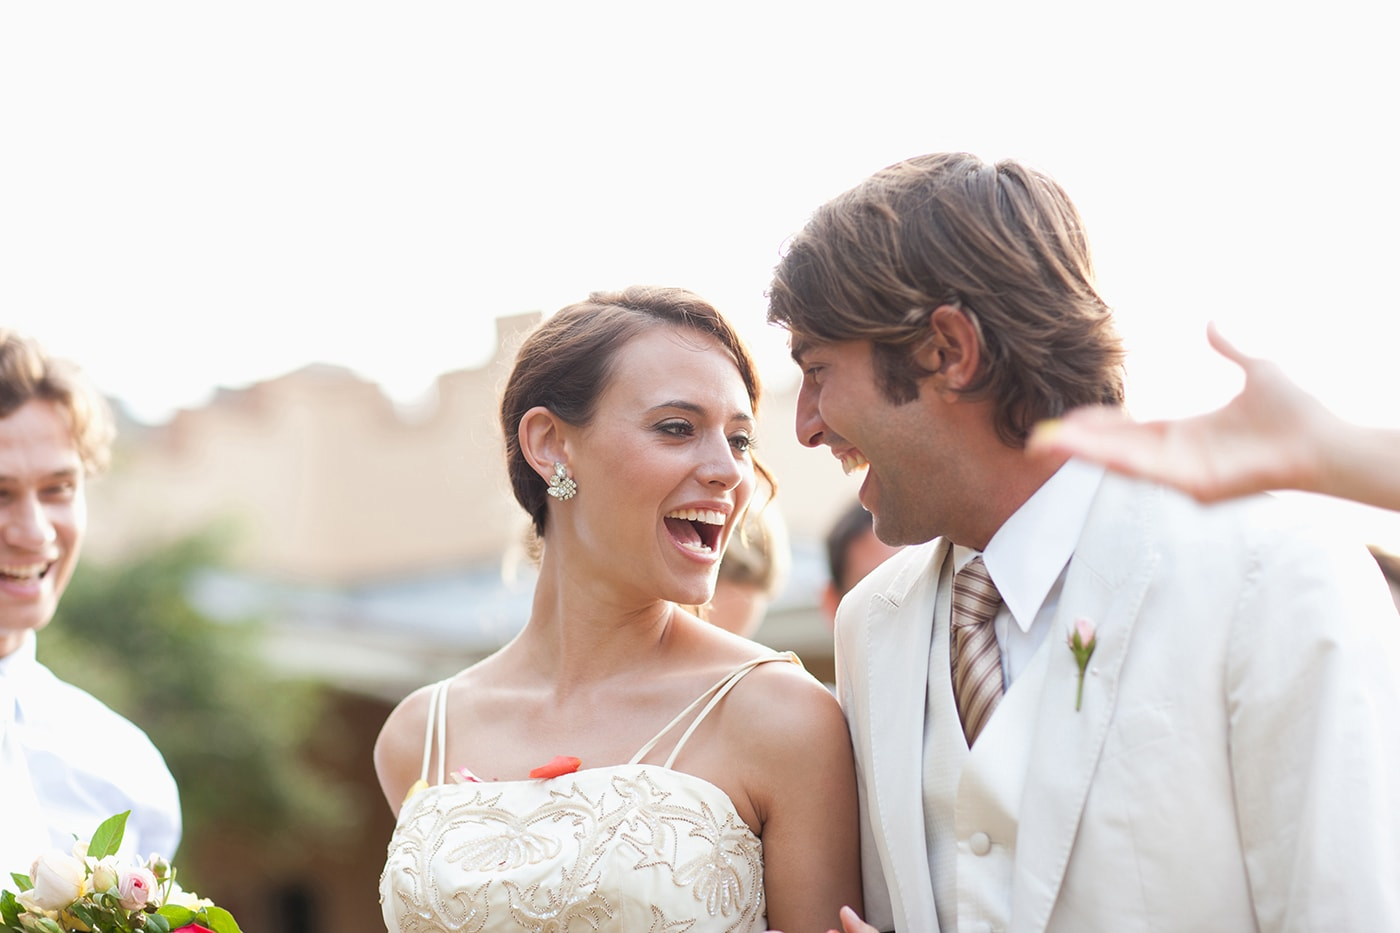 Married Couples Do Not Have Joint Credit Reports article image.